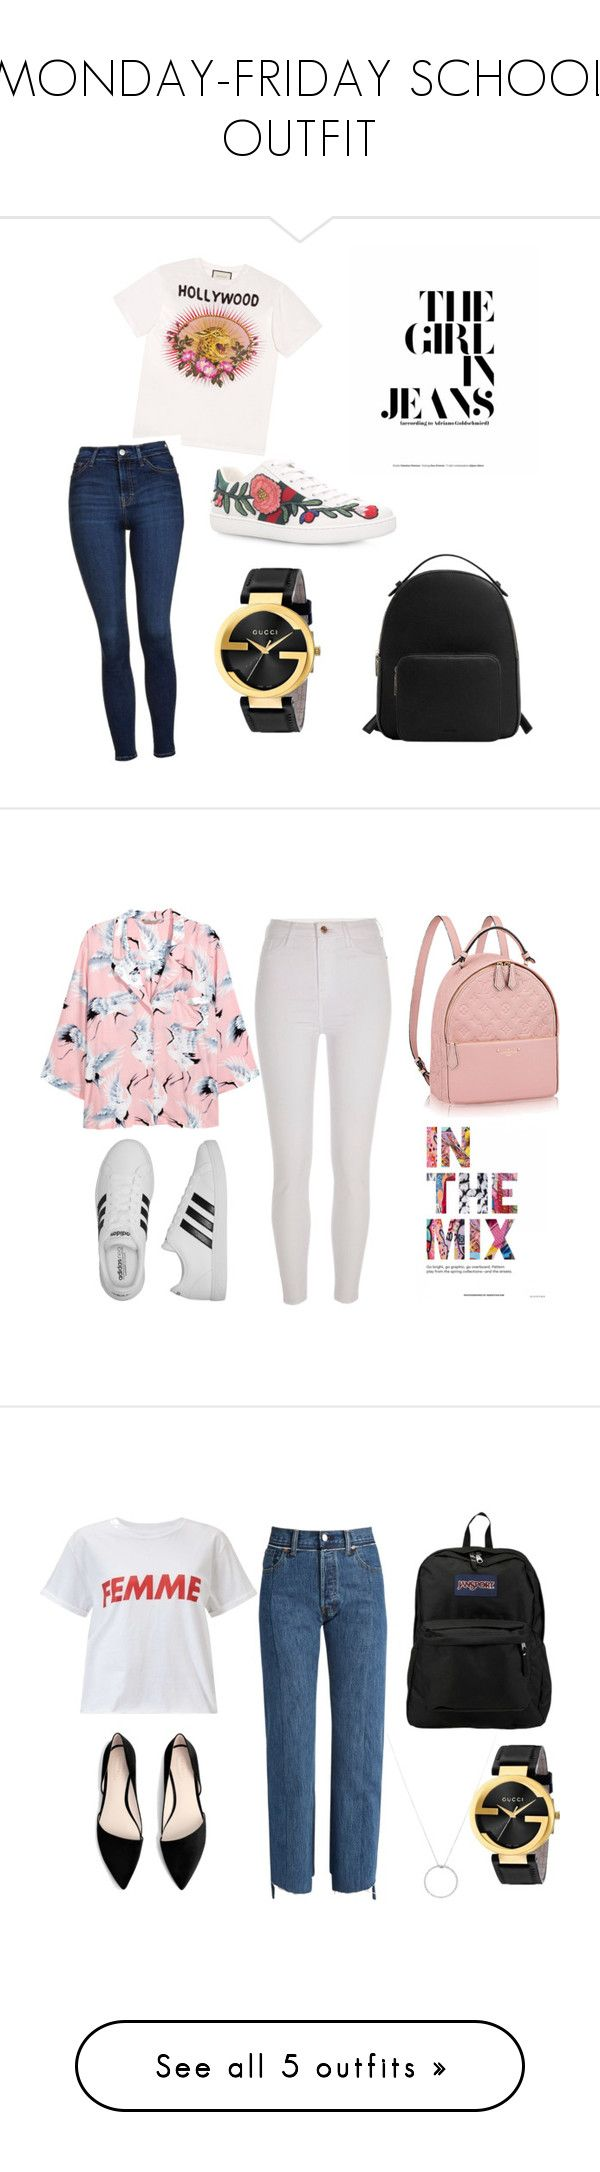 MONDAY-FRIDAY SCHOOL OUTFIT by mariacabrito on Polyvore featuring Gucci, Topshop, MANGO, H&M, River Island, adidas, Miss Selfridge, Vetements, JanSport and Roberto Coin